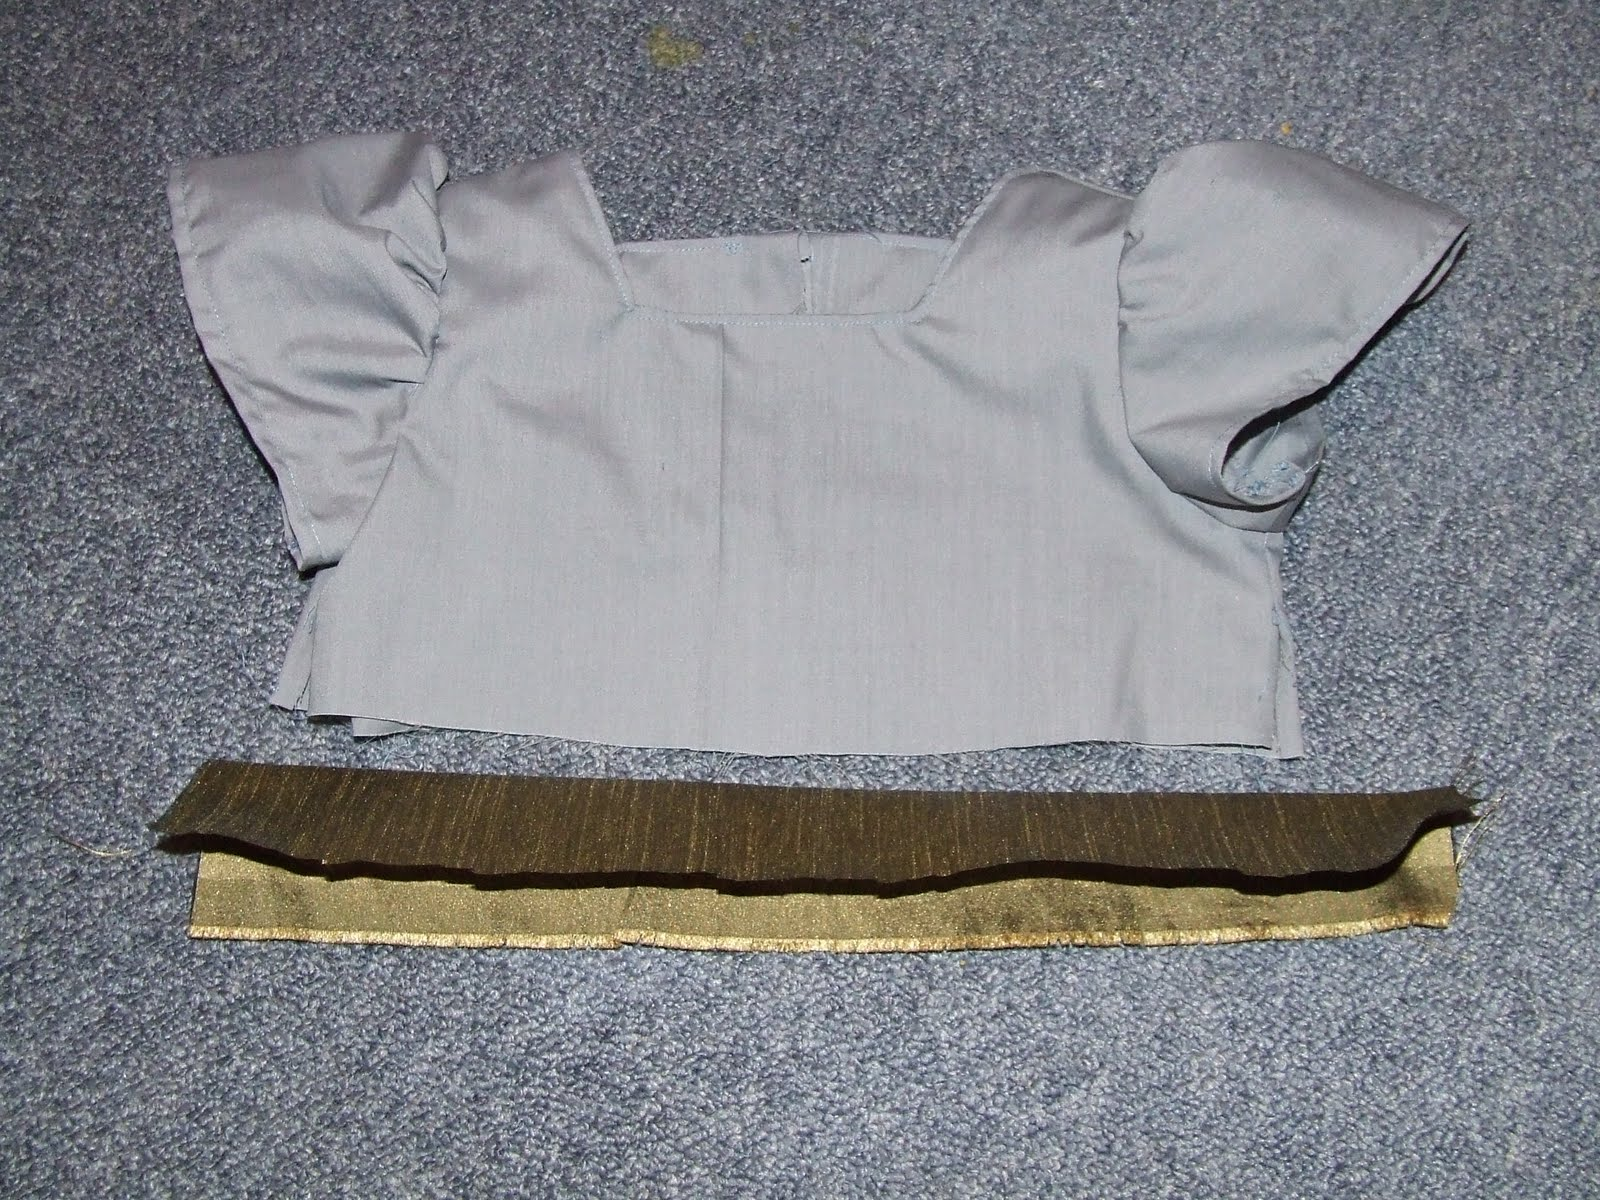 Making a dress with a belt/bow tied at the back